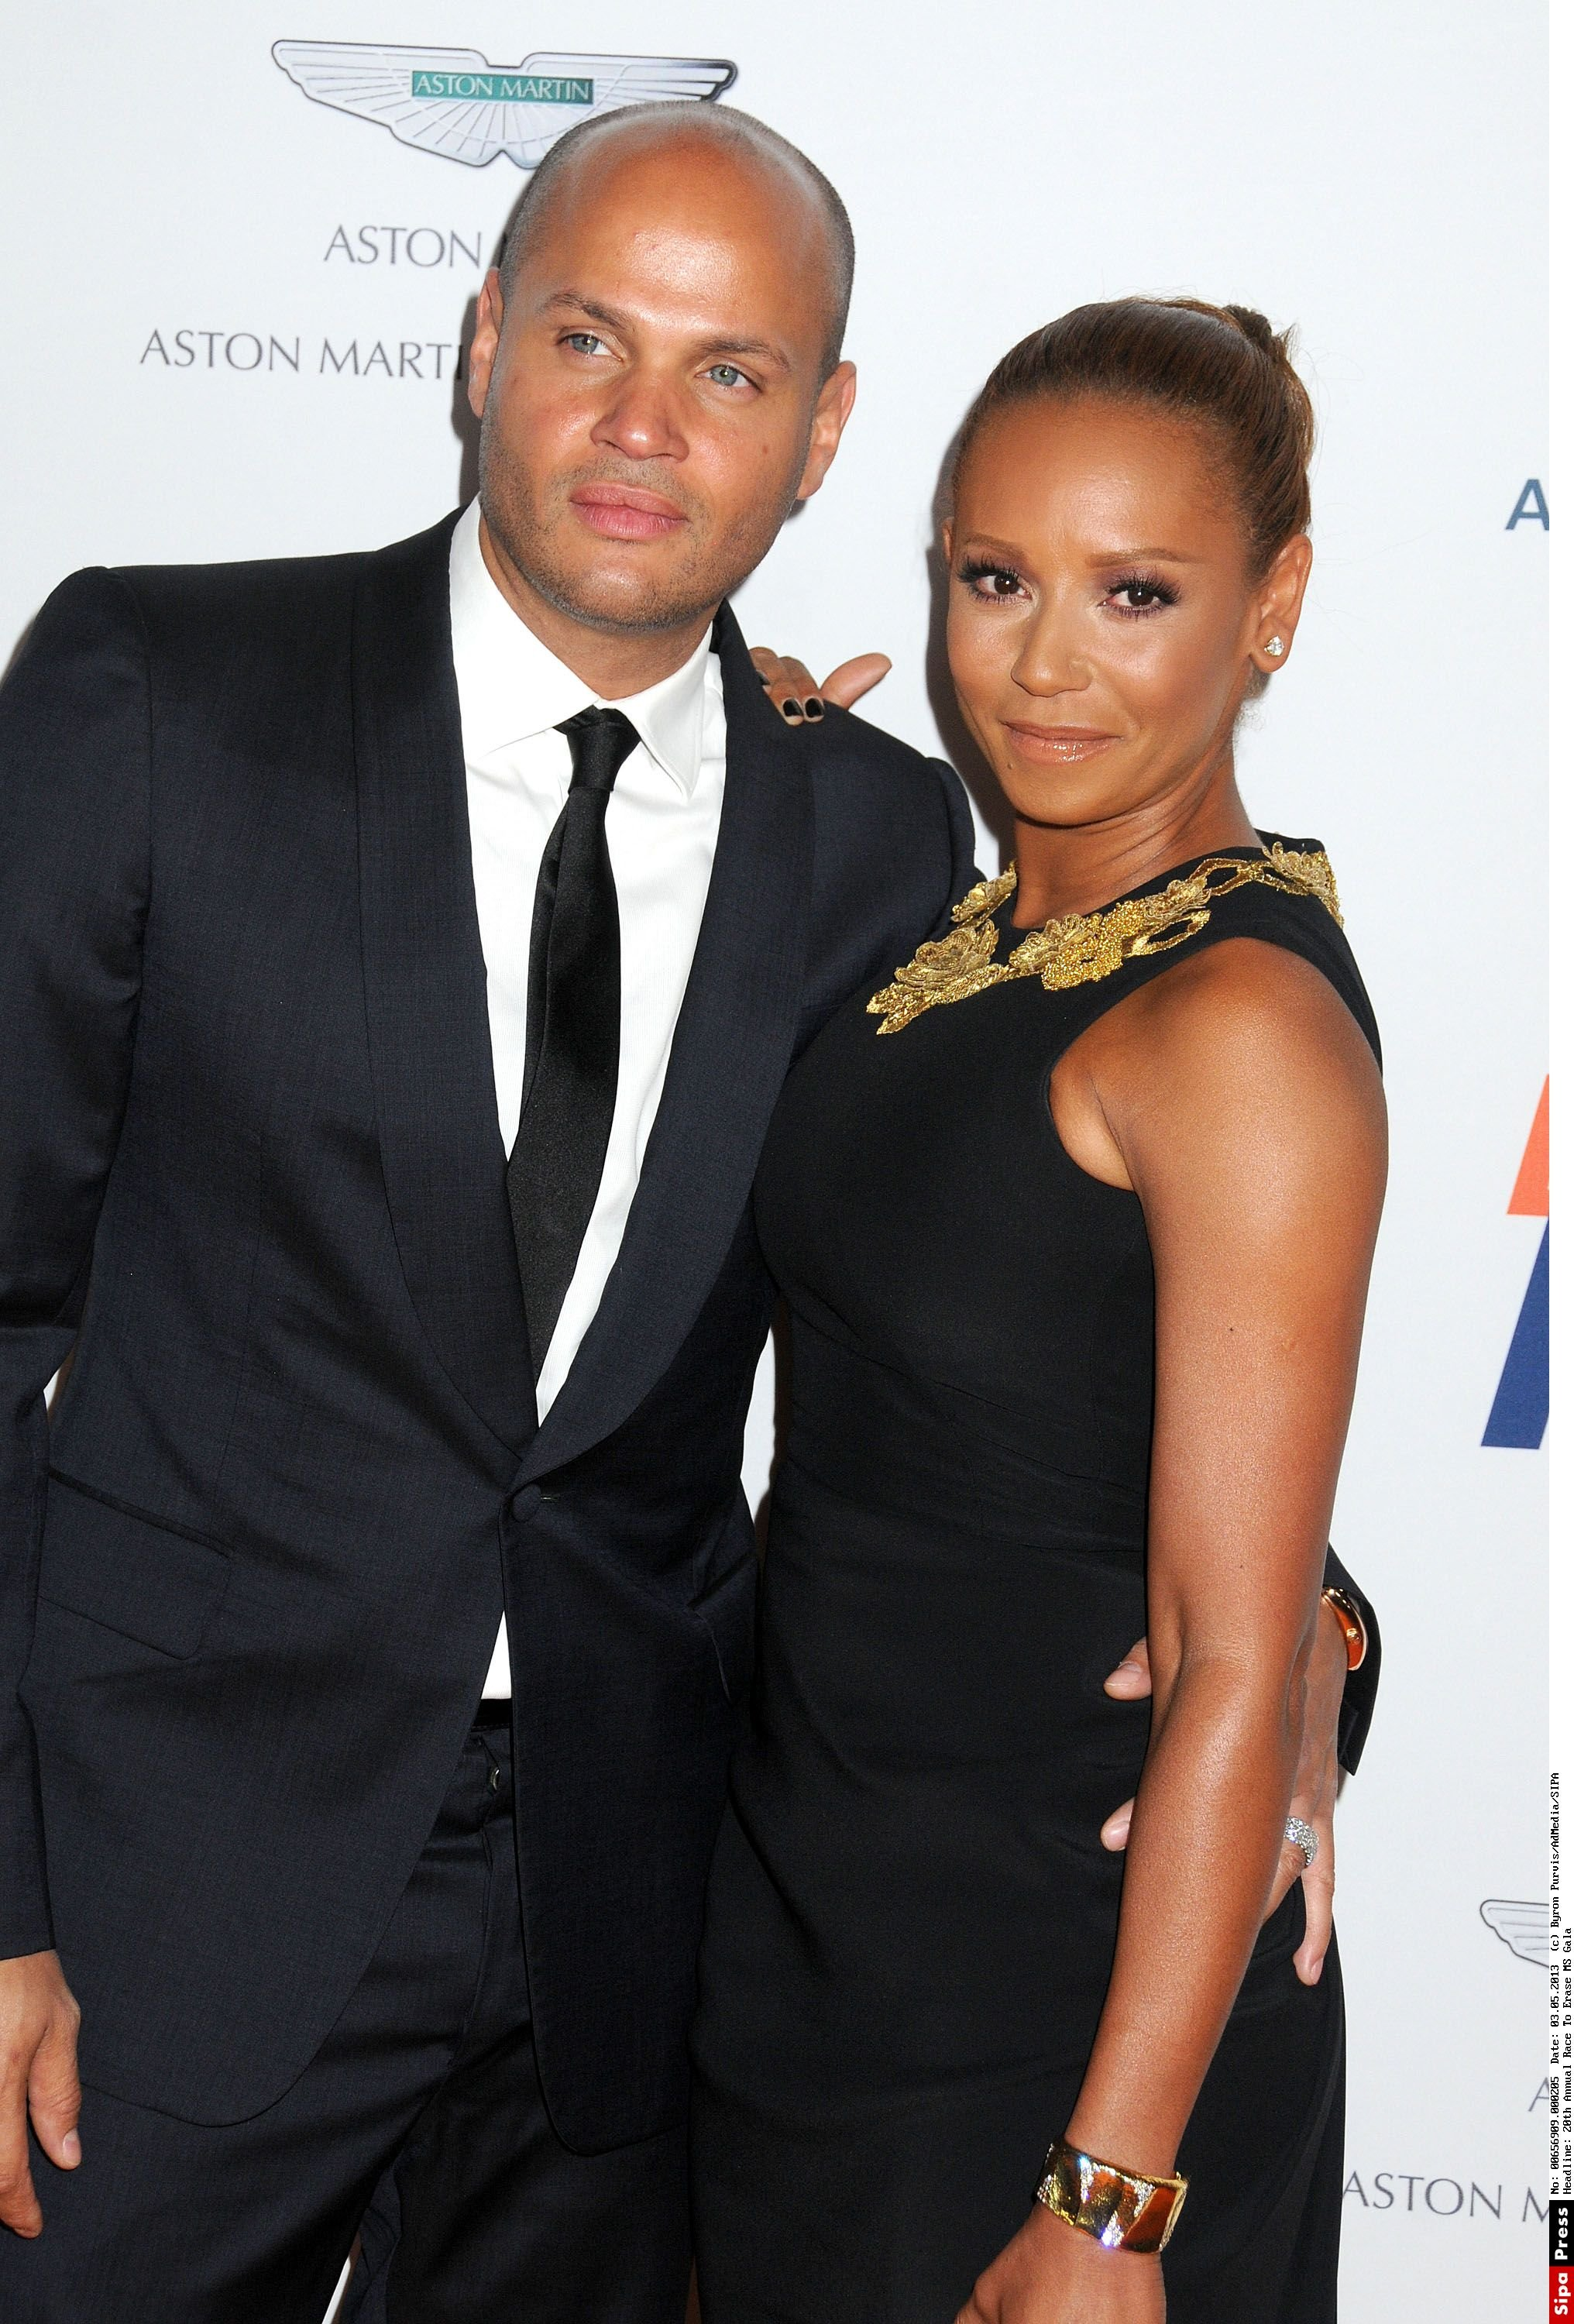 3 May 2013 - Century City, California - Stephen Belafonte, Melanie Brown, Mel B. 20th Annual Race To Erase MS Gala held at the Hyatt Regency Century Plaza Hotel. Photo Credit: Byron Purvis/AdMedia/ADMEDIA_adm_RaceToErase2013_BP_206/Credit:Byron Purvis/AdMedia/SIPA/1305041217, Image: 232333560, License: Rights-managed, Restrictions: , Model Release: no, Credit line: Profimedia, TEMP Sipa Press